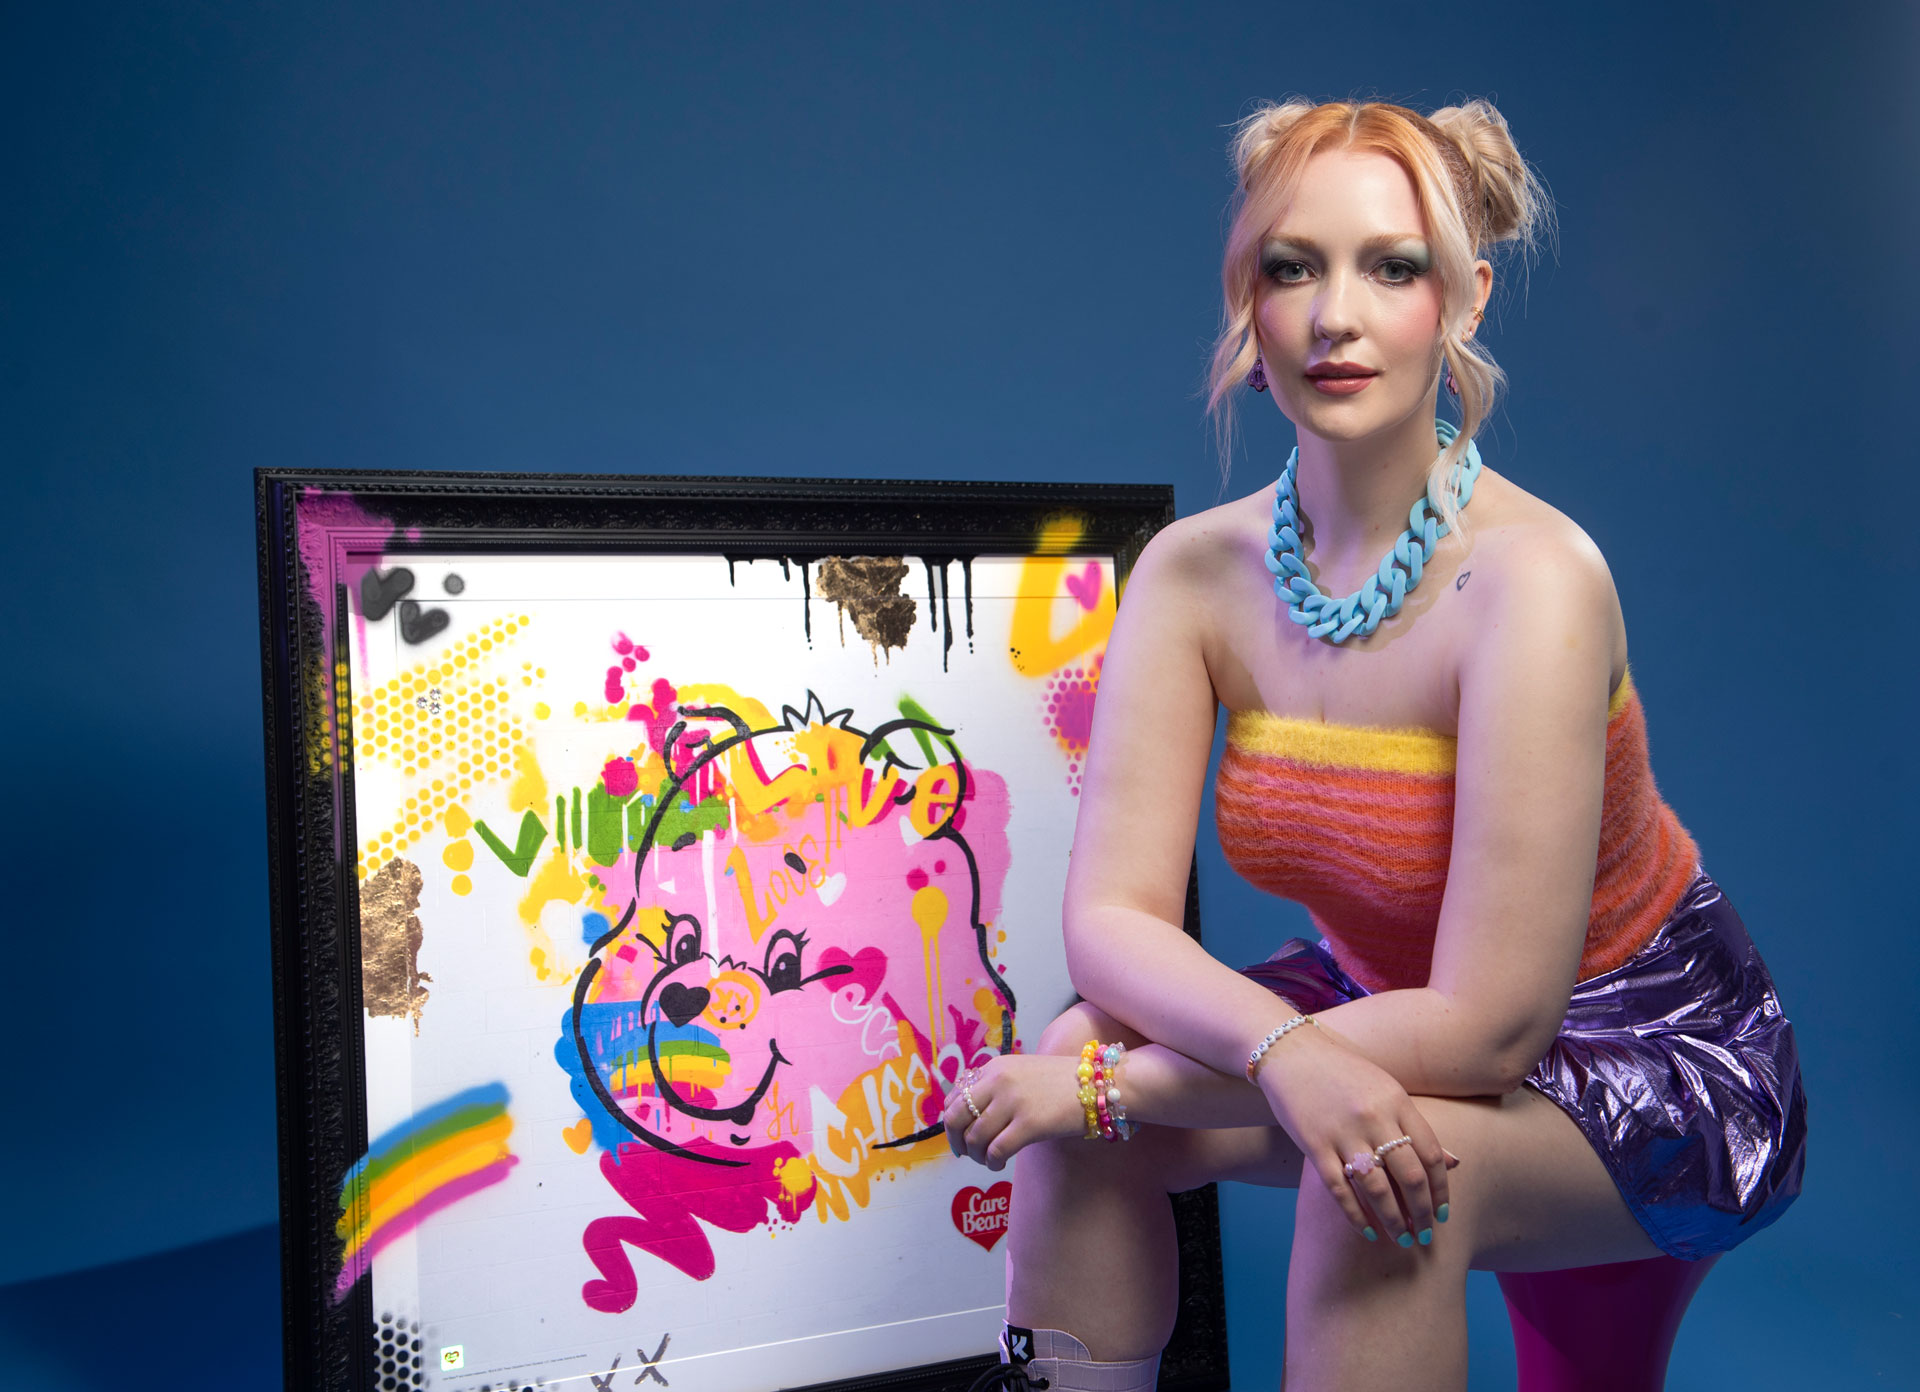 Victoria-Clay-Models-with-Luxury-Care-Bears-Grafitti-Print